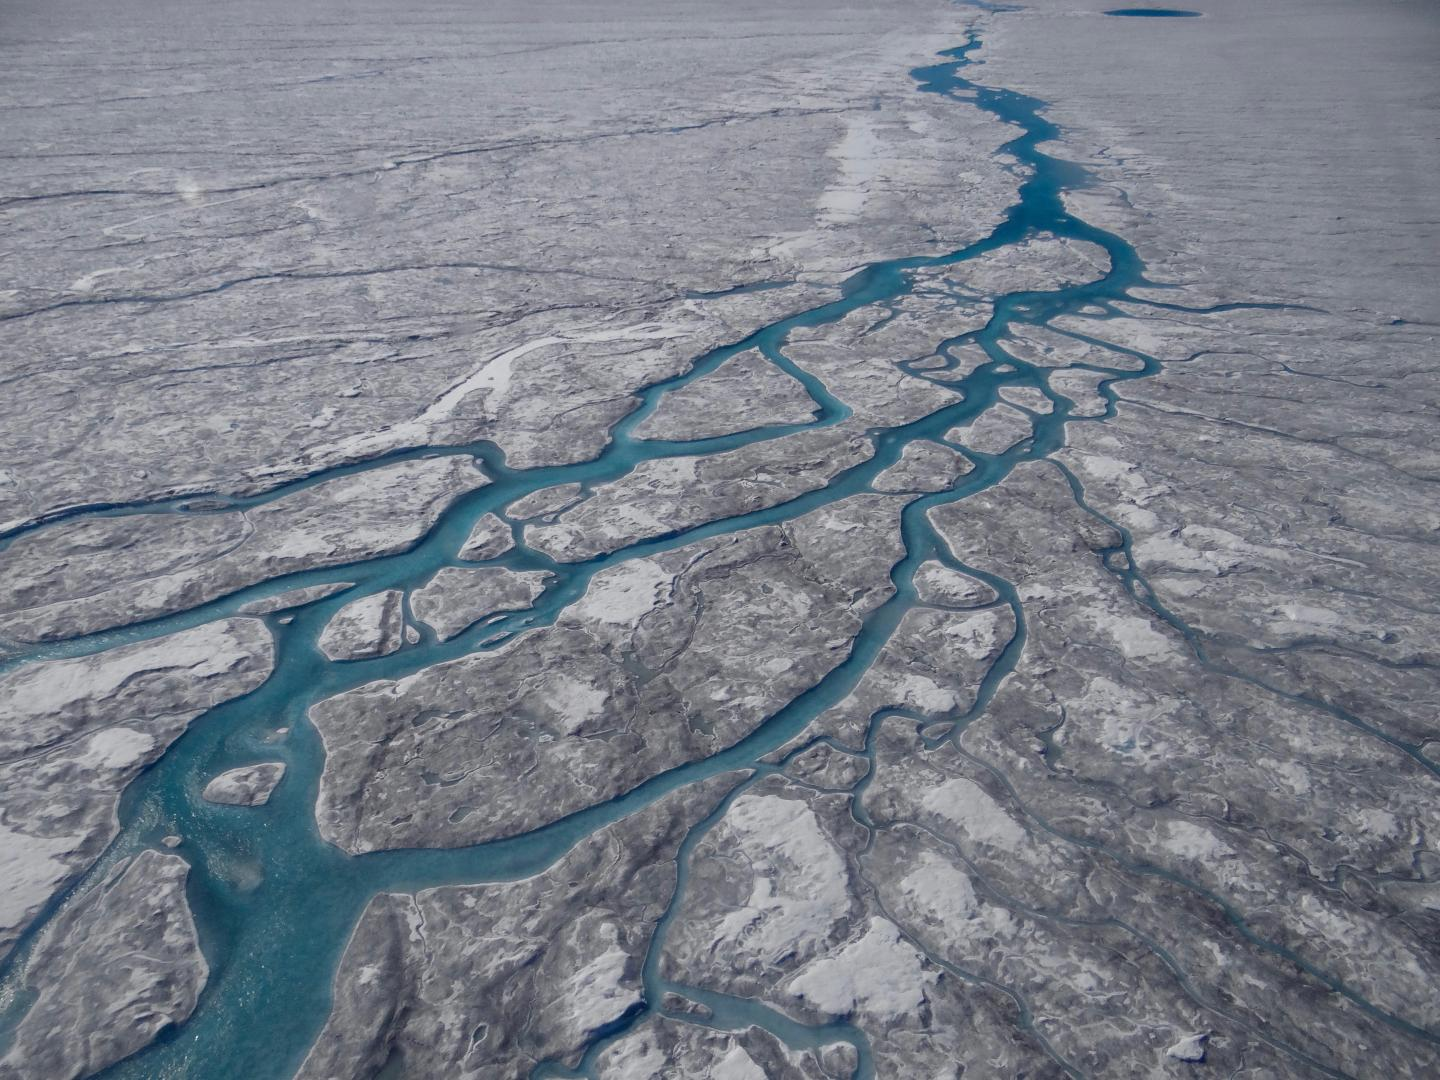 Darkening and Melting of the Greenland Ice Sheet